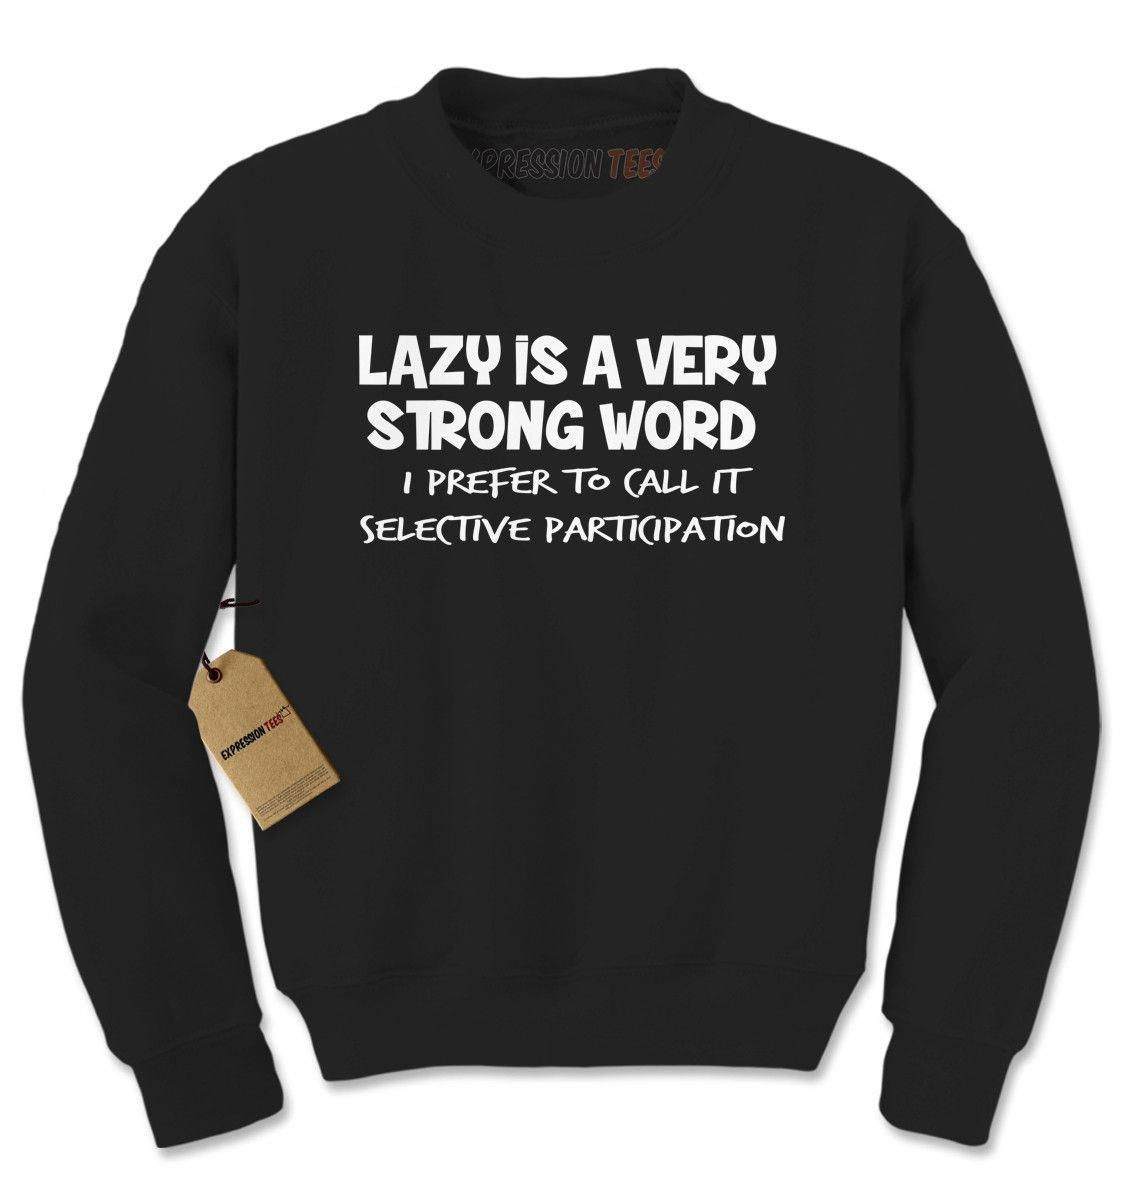 ec63b678 Lazy Is A Very Strong Word Funny Slogan Adult Crewneck Sweatshirt ...